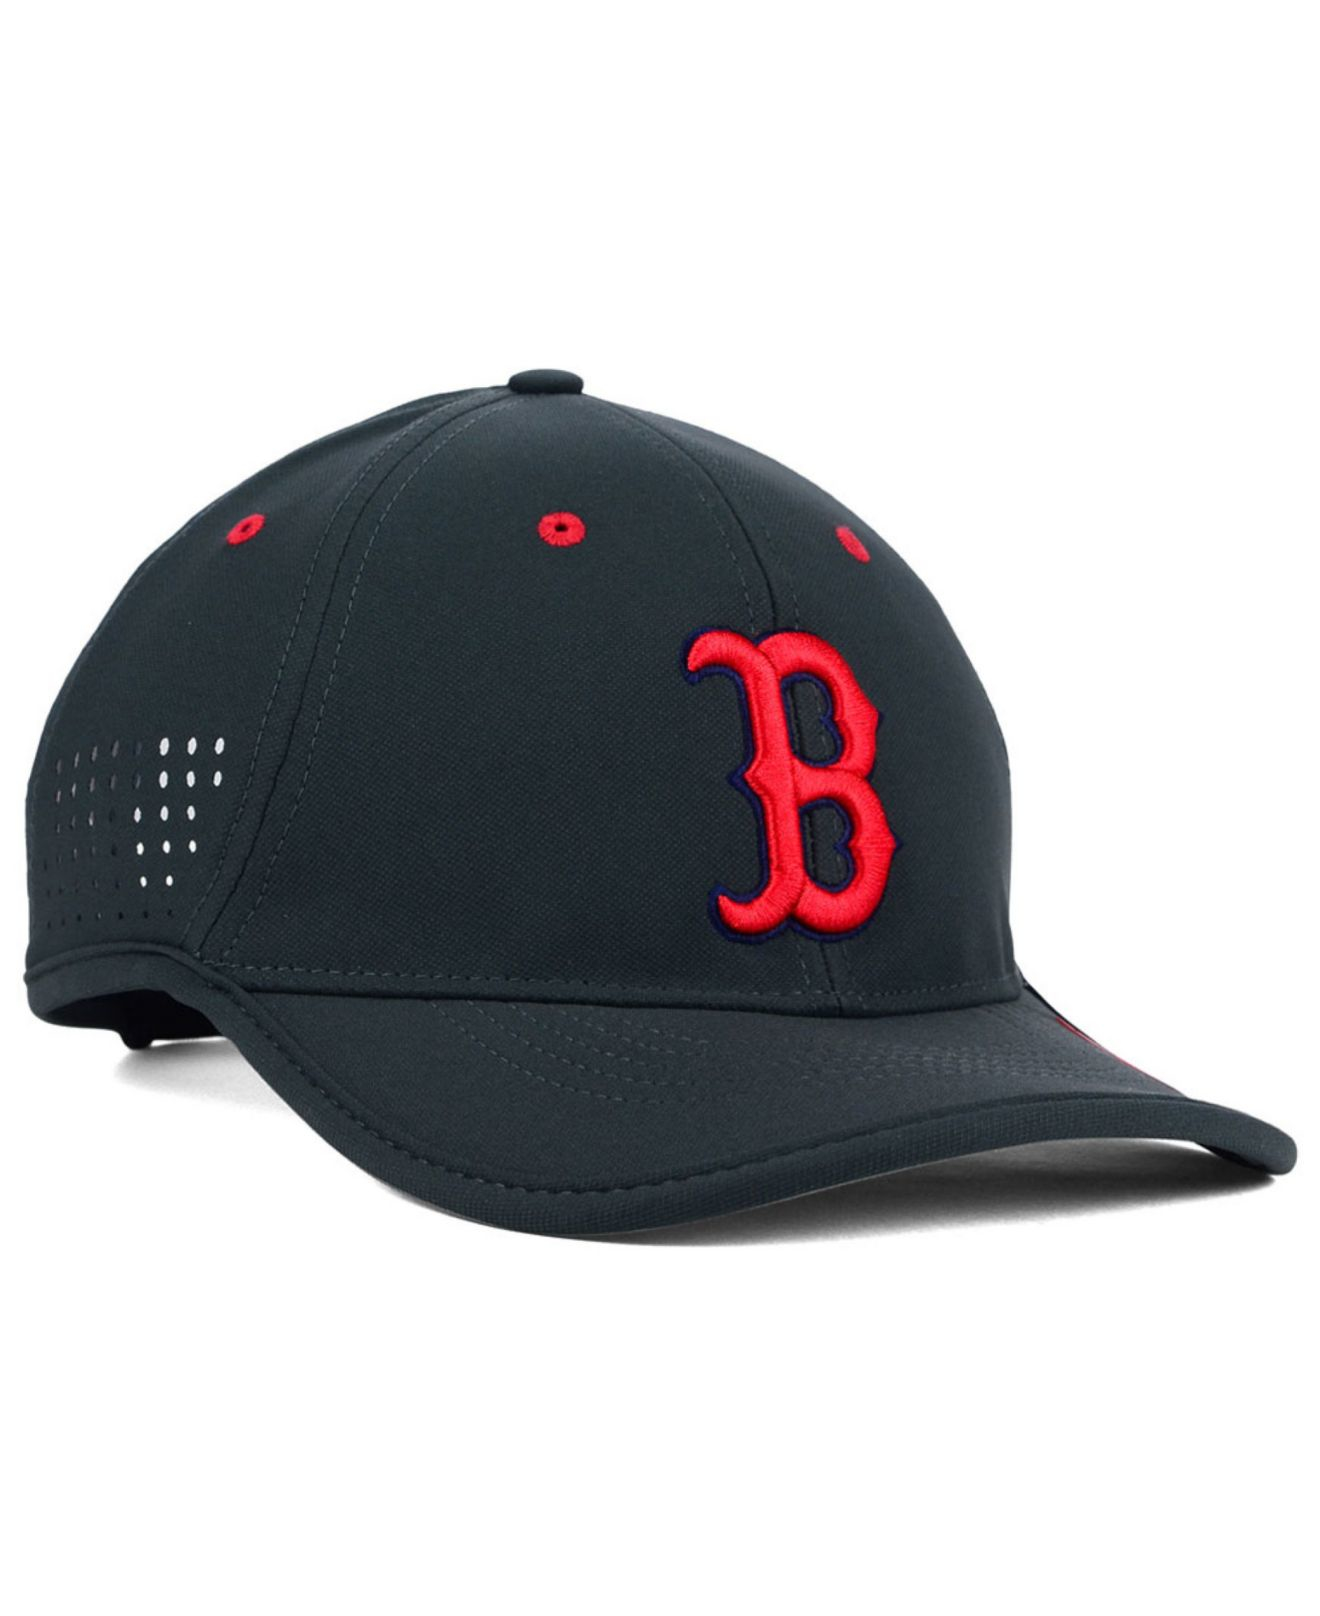 huge selection of 5cb8d 2713a ... greece lyst nike boston red sox vapor swoosh adjustable cap in gray for  men 6dee4 1b313